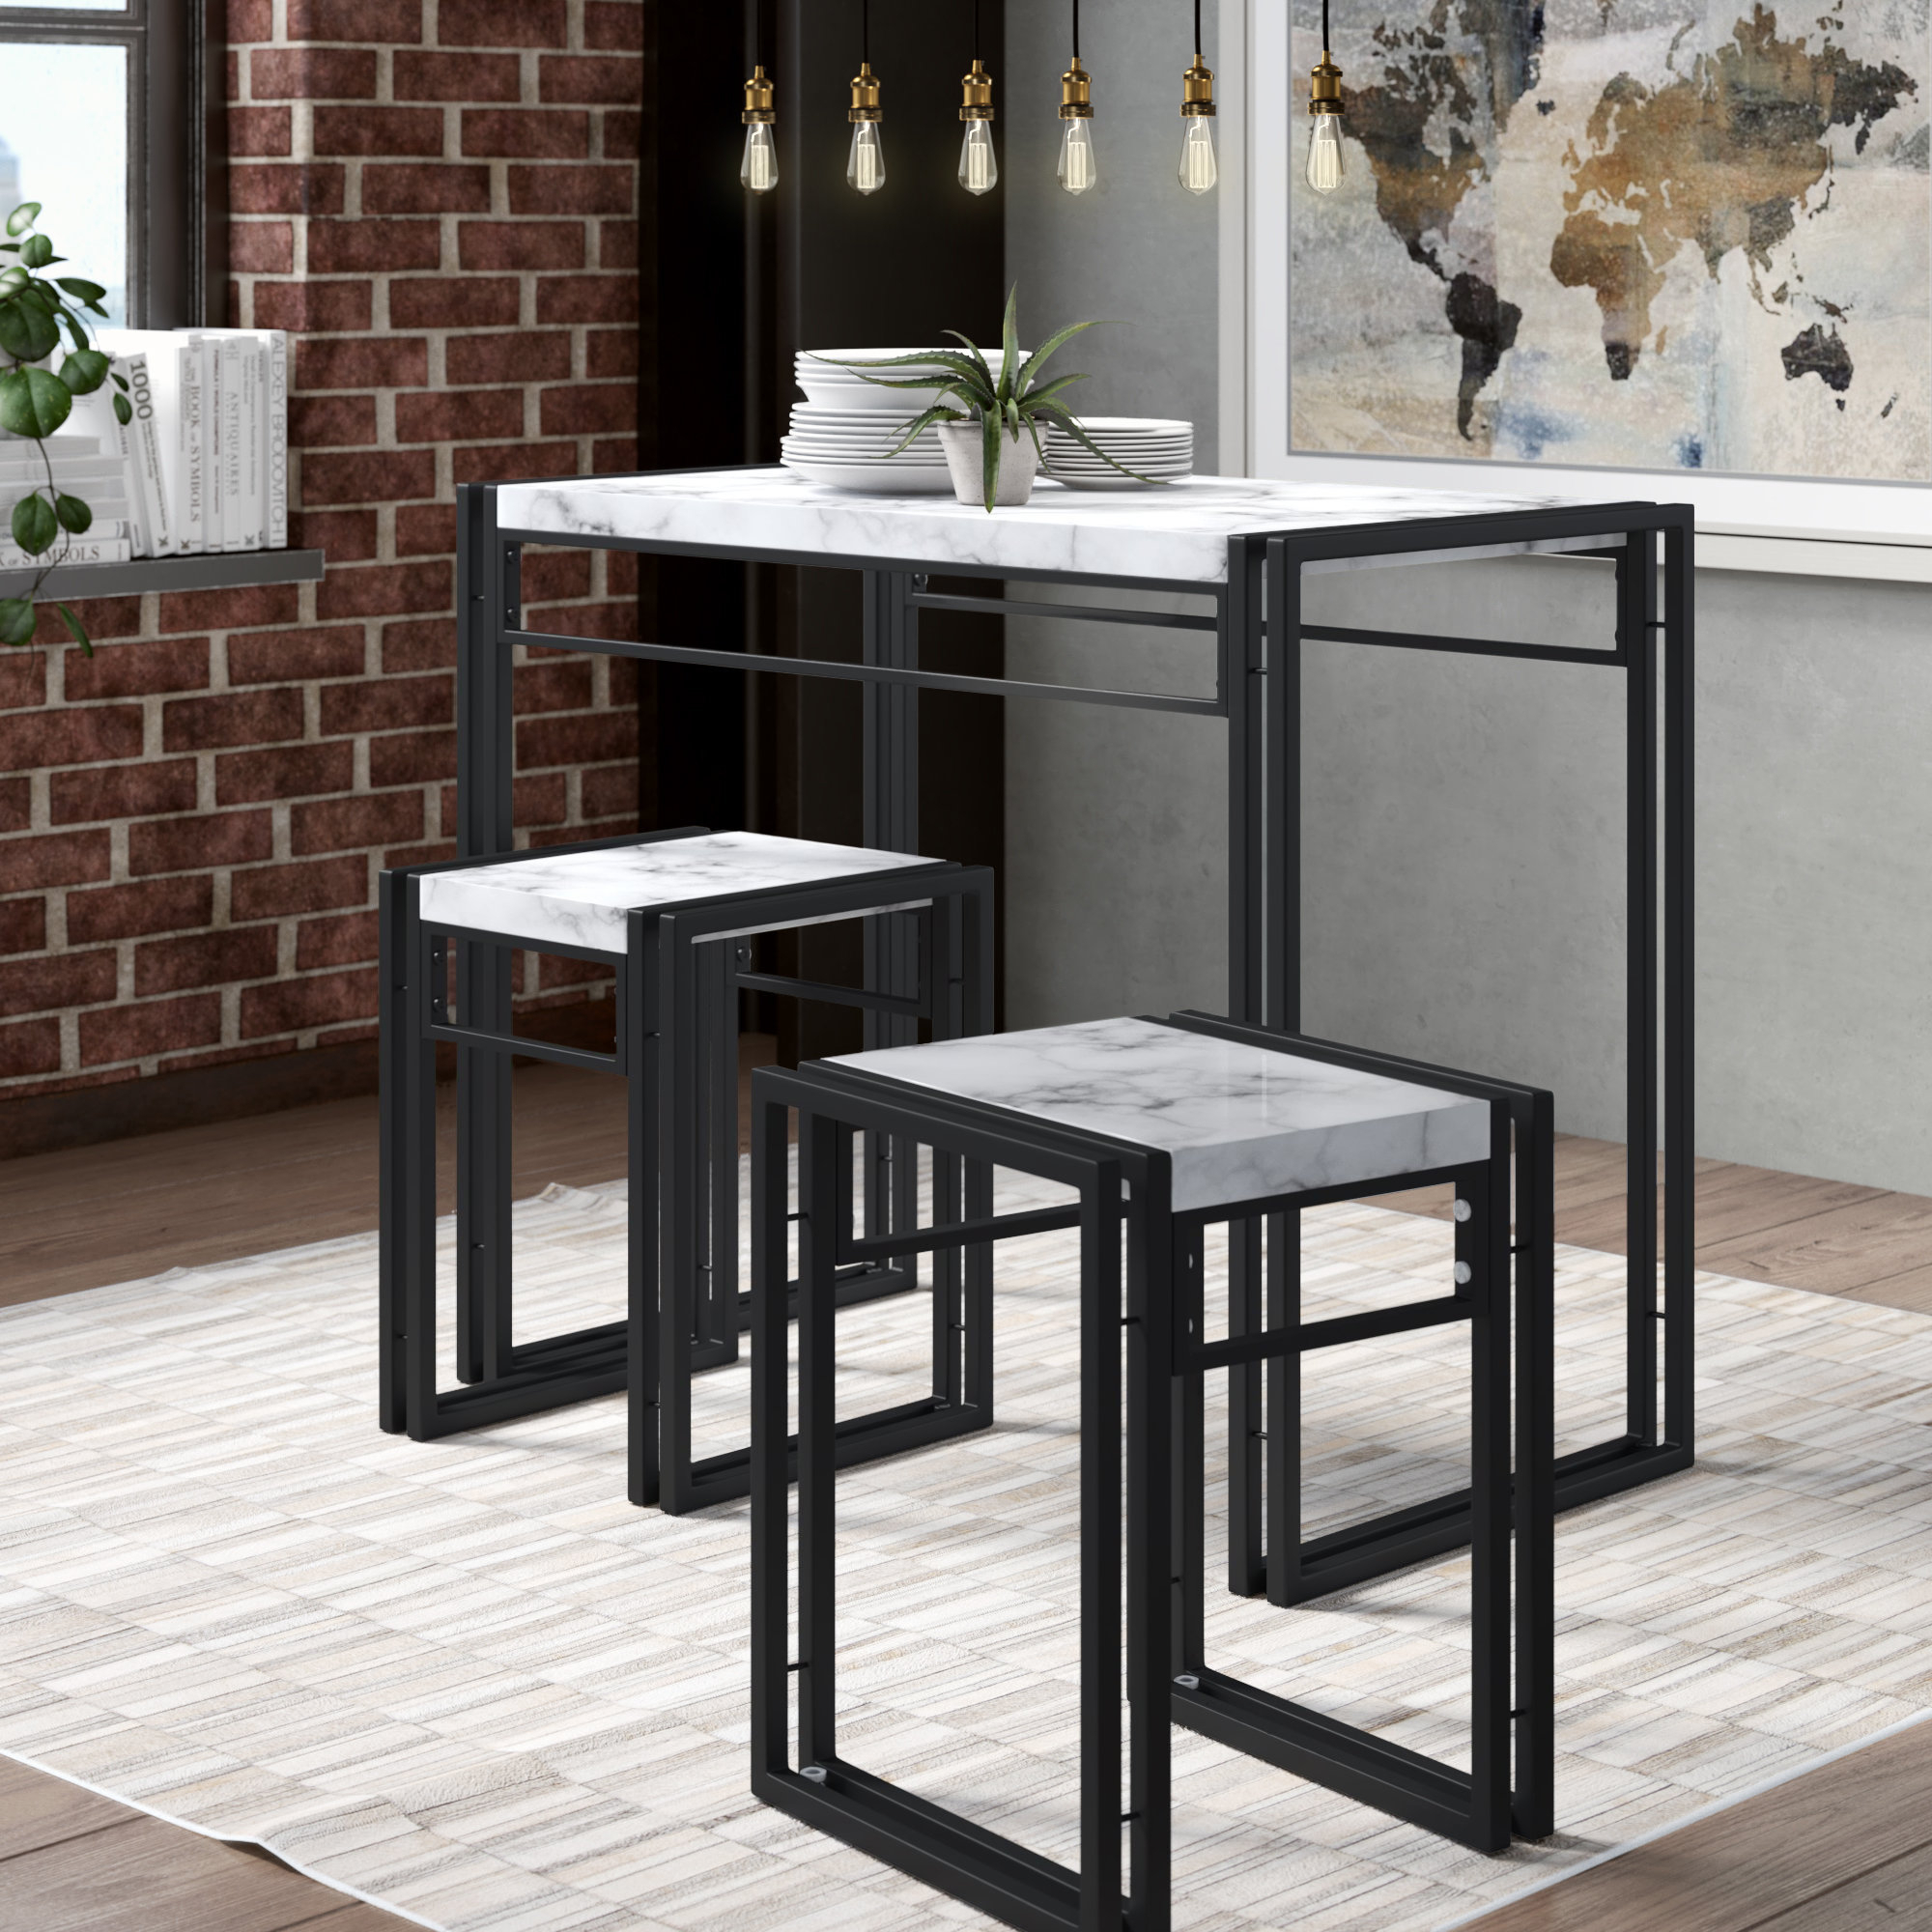 Nutter 3 Piece Dining Sets With Regard To Preferred Williston Forge Debby Small Space 3 Piece Dining Set & Reviews (View 3 of 20)